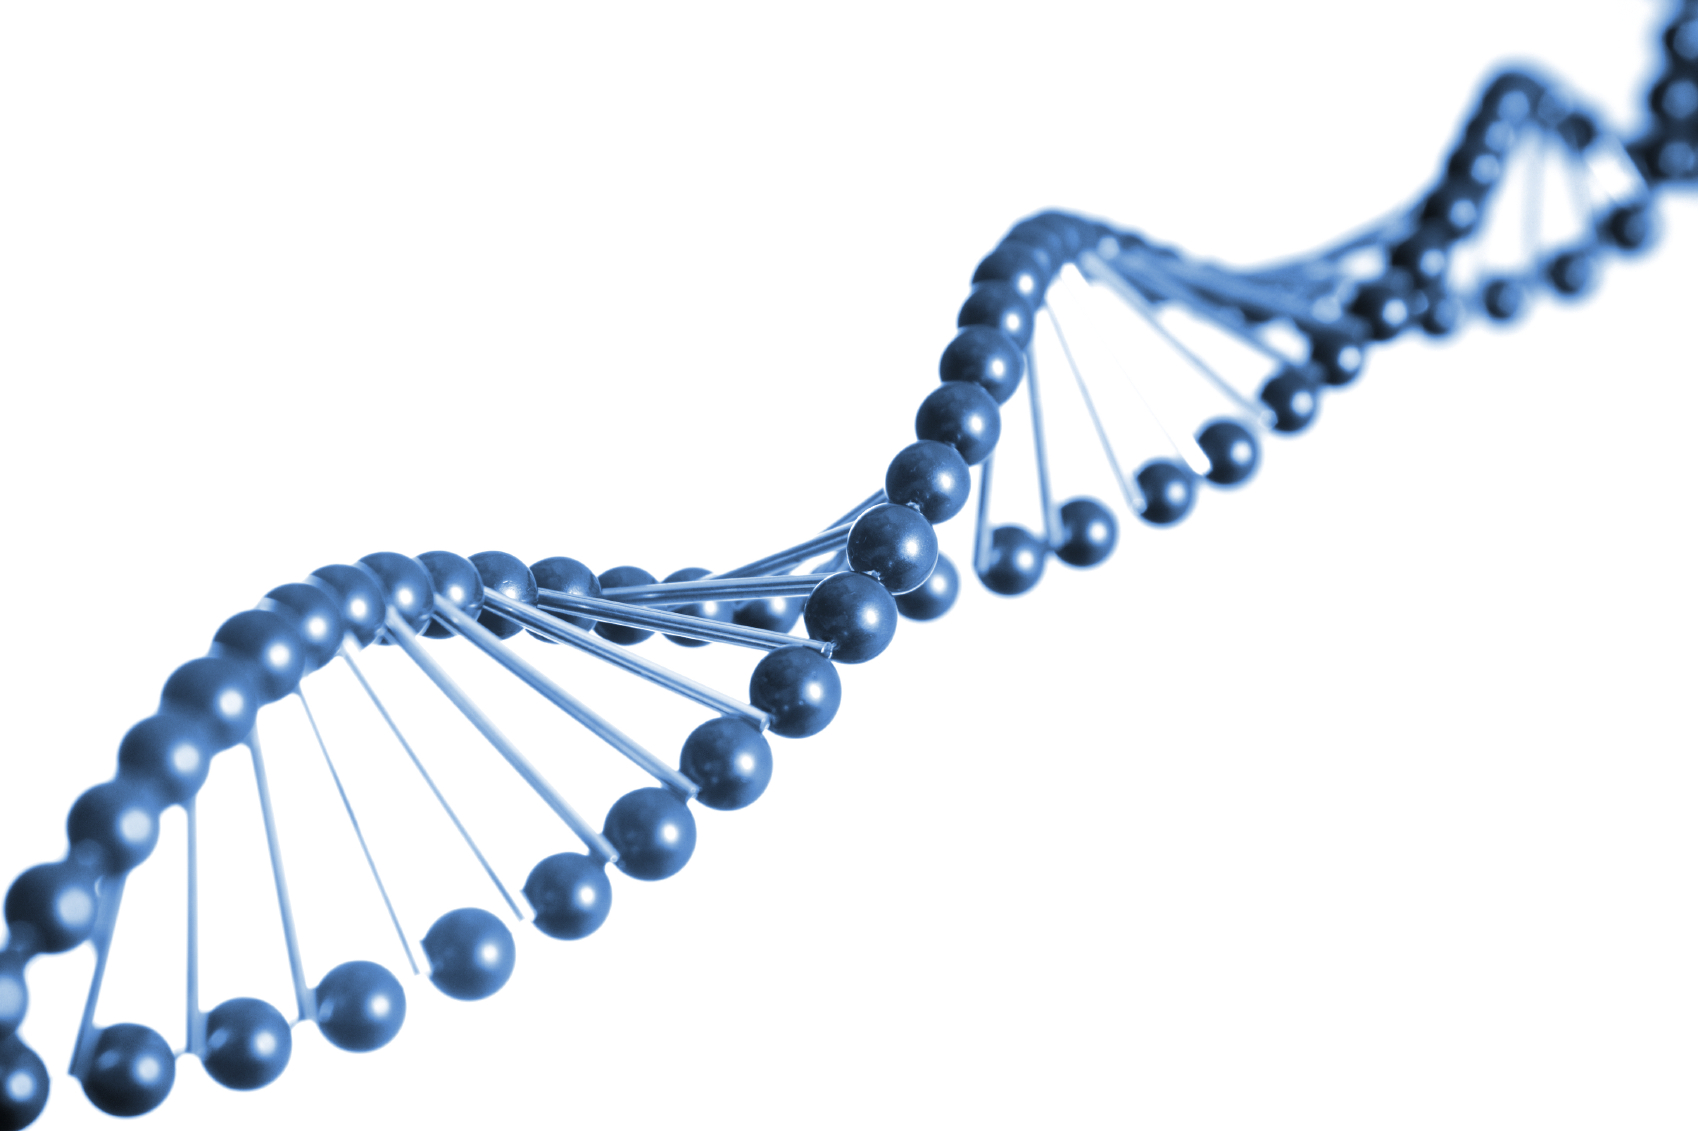 Financial DNA: What Is It And How Does It Work?